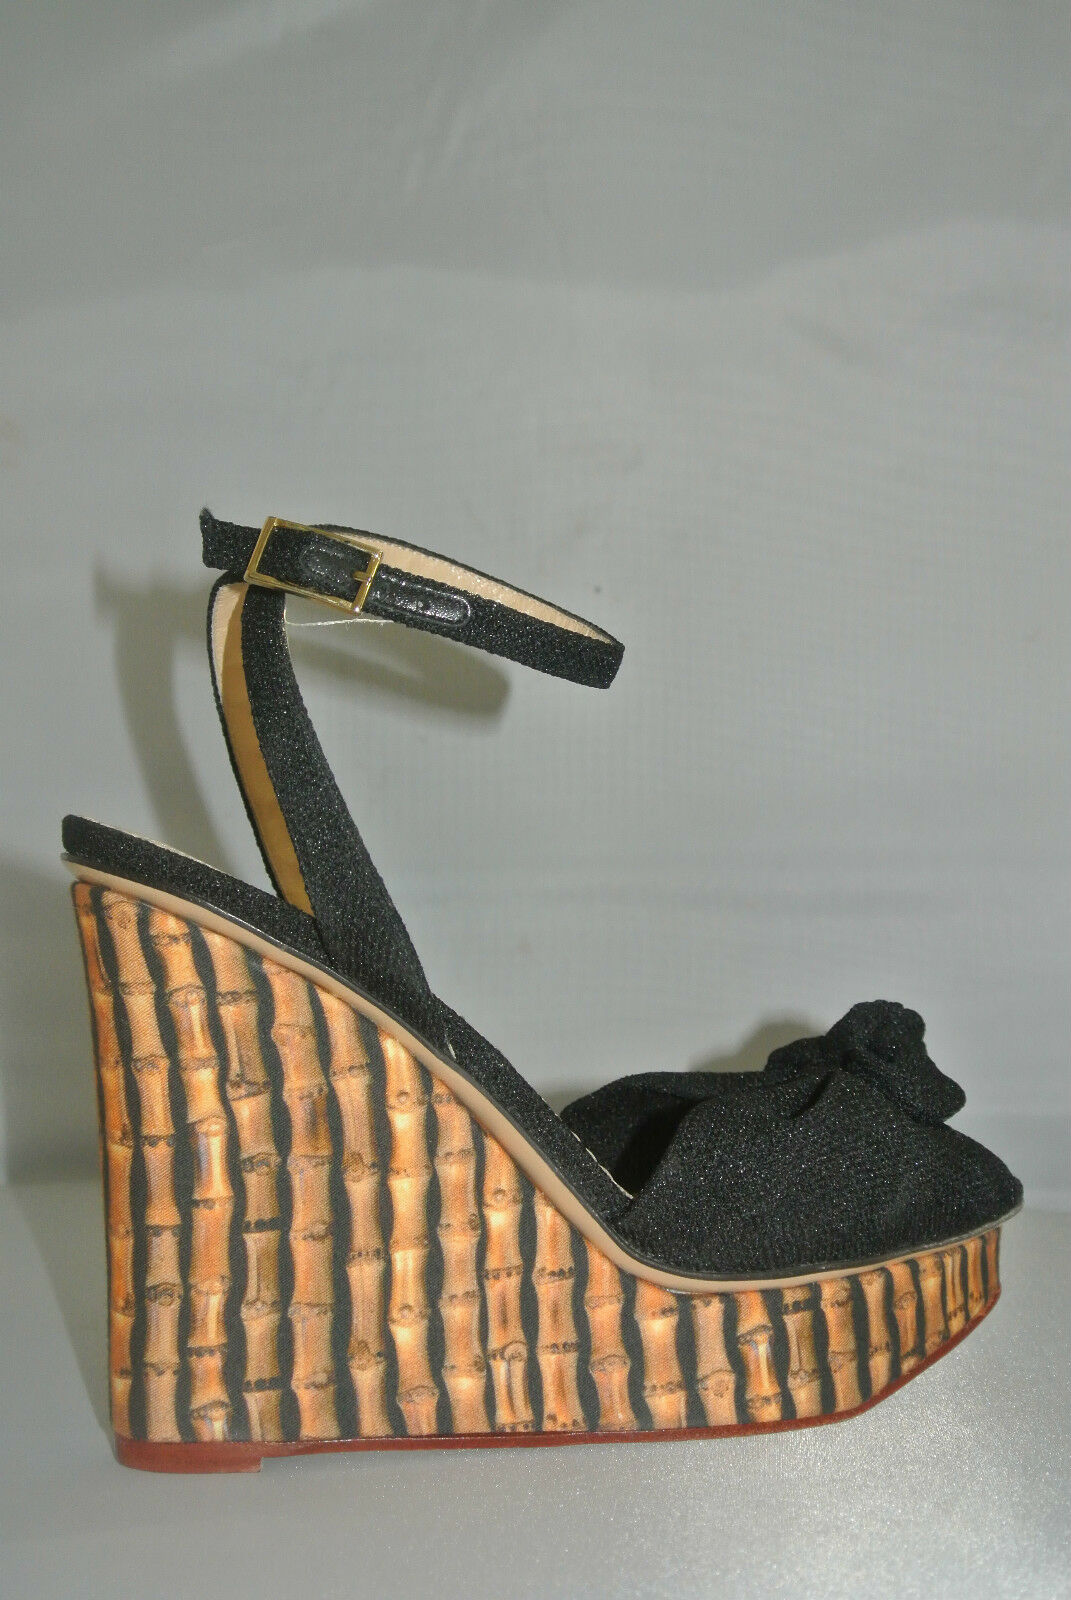 Charlotte Charlotte Charlotte Olympia Bamboo-Print Wedges with Ankle Strap Sz 38.5 NEW abbf43